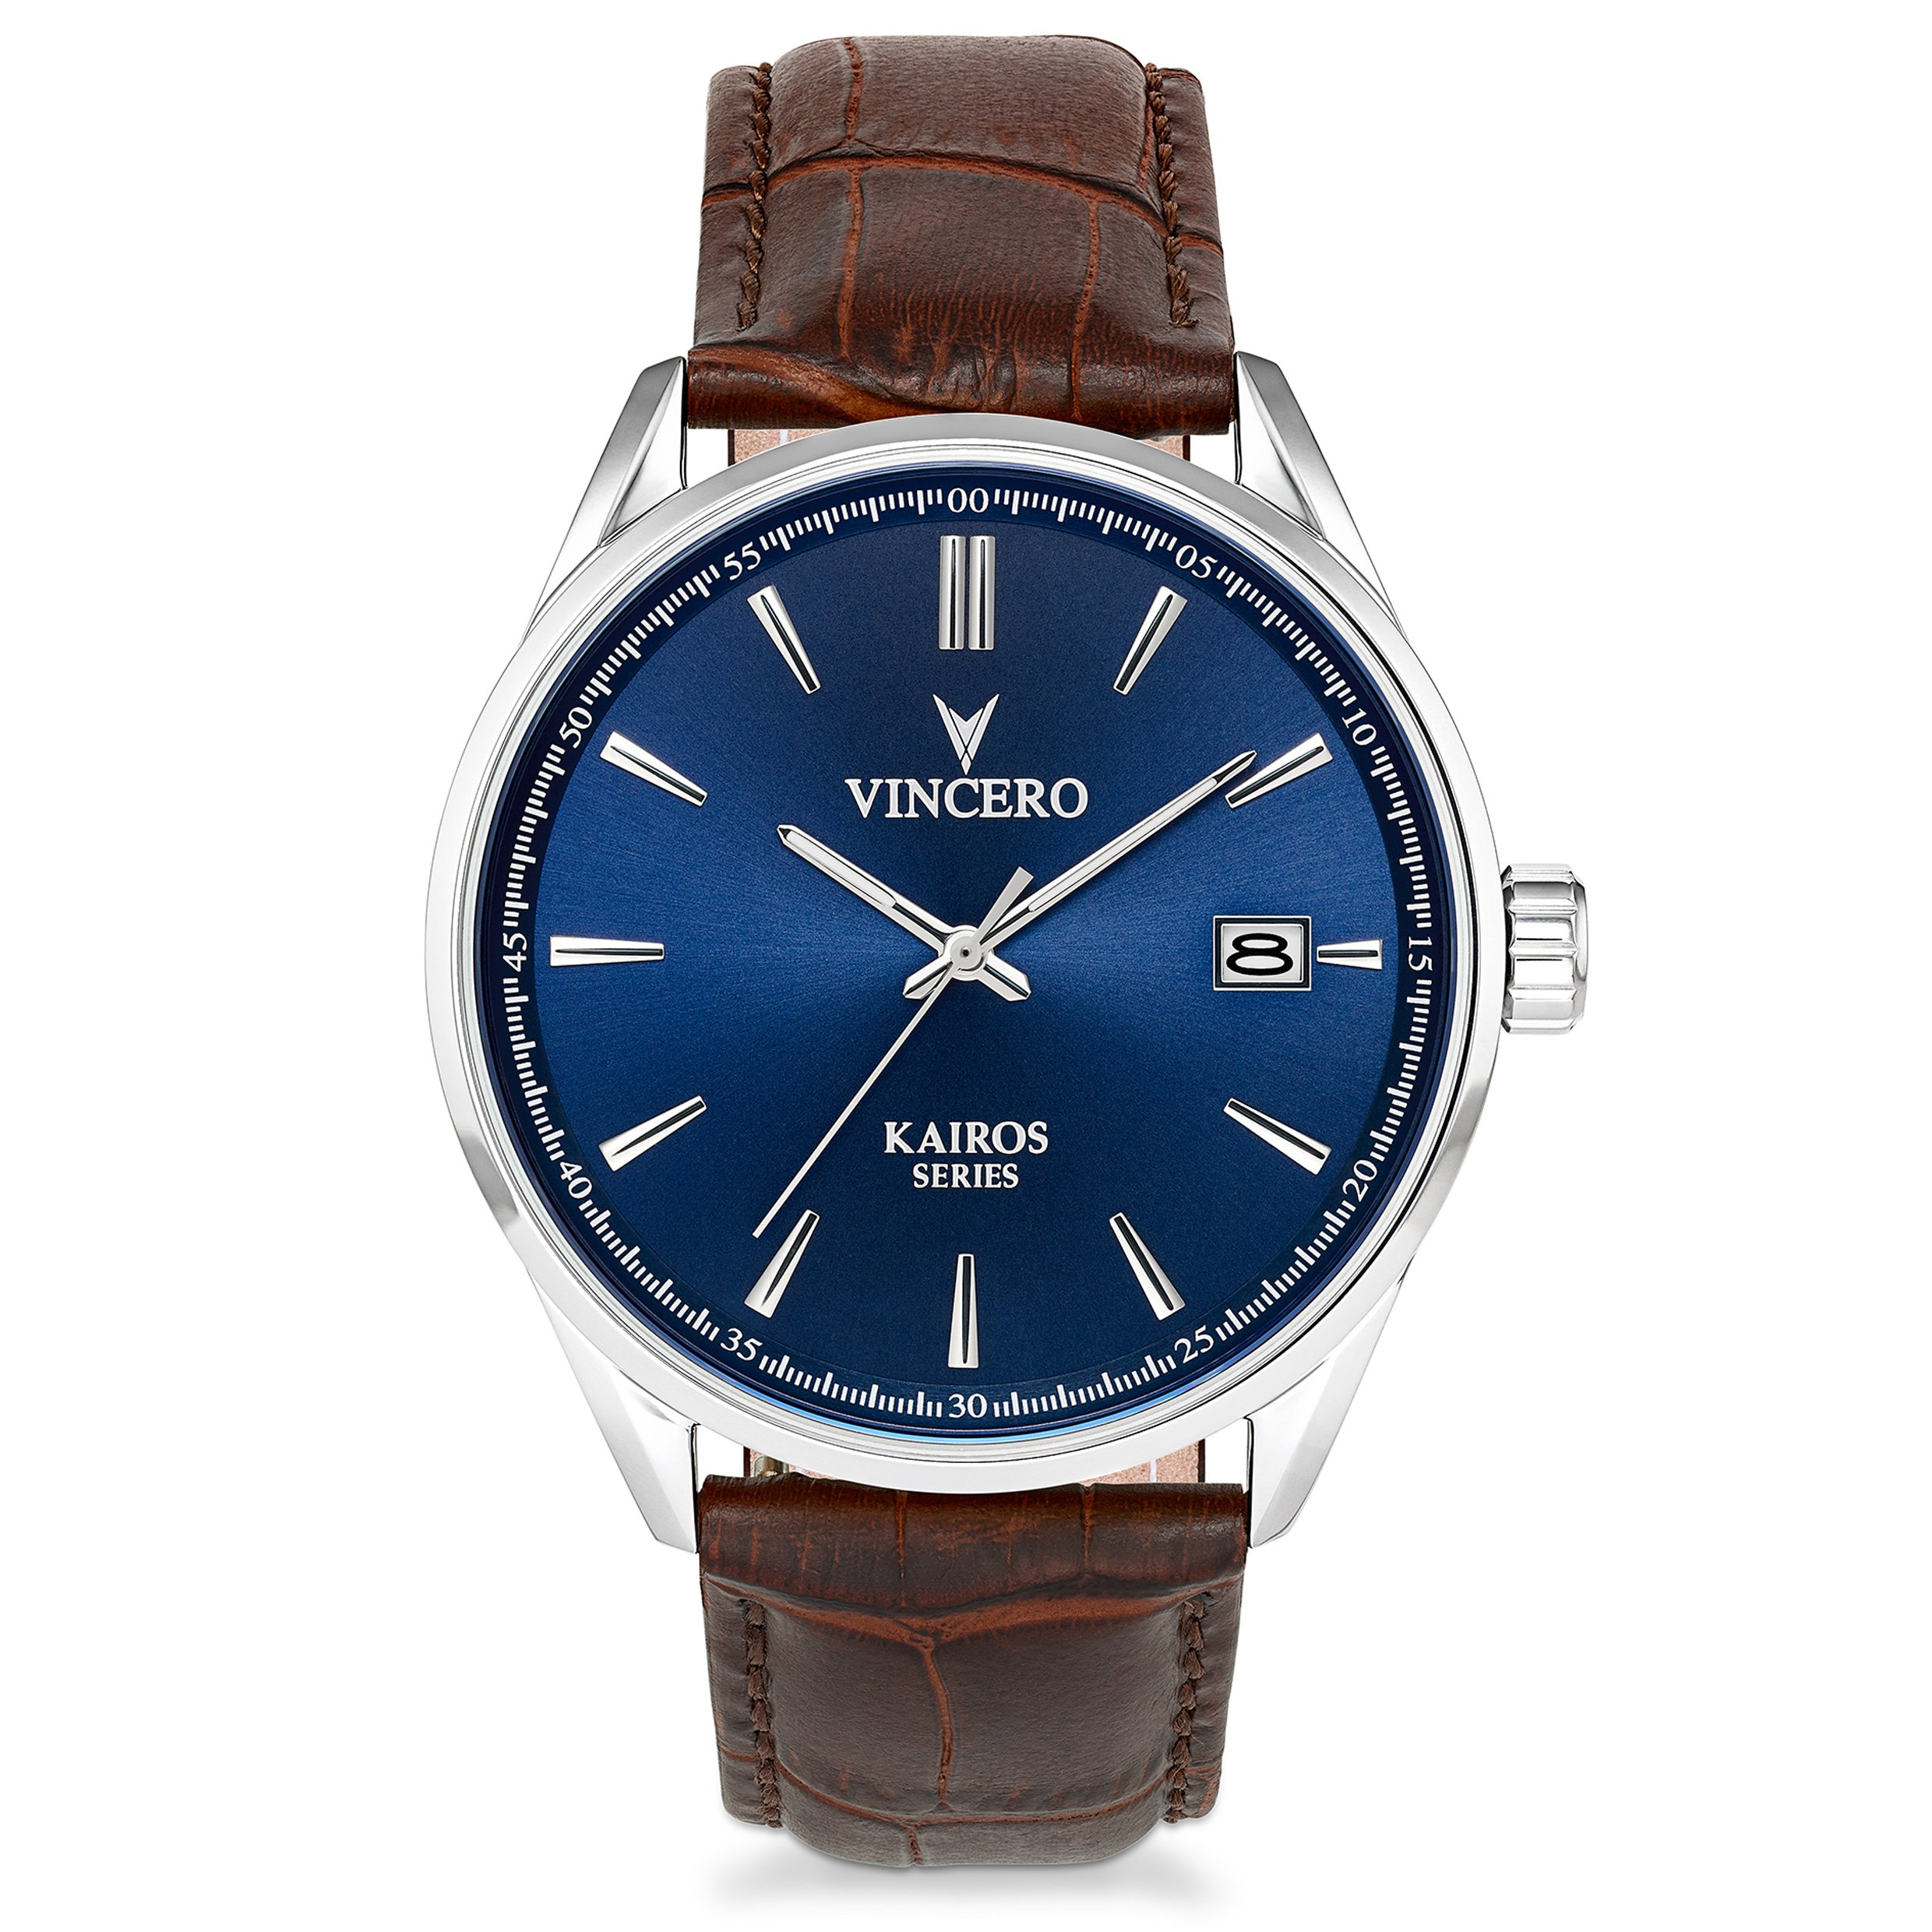 silver men quartz buy for round online watch adamo clothing shopping blue manly watches dial analogue electronics site mens fashion stainless steel mobiles